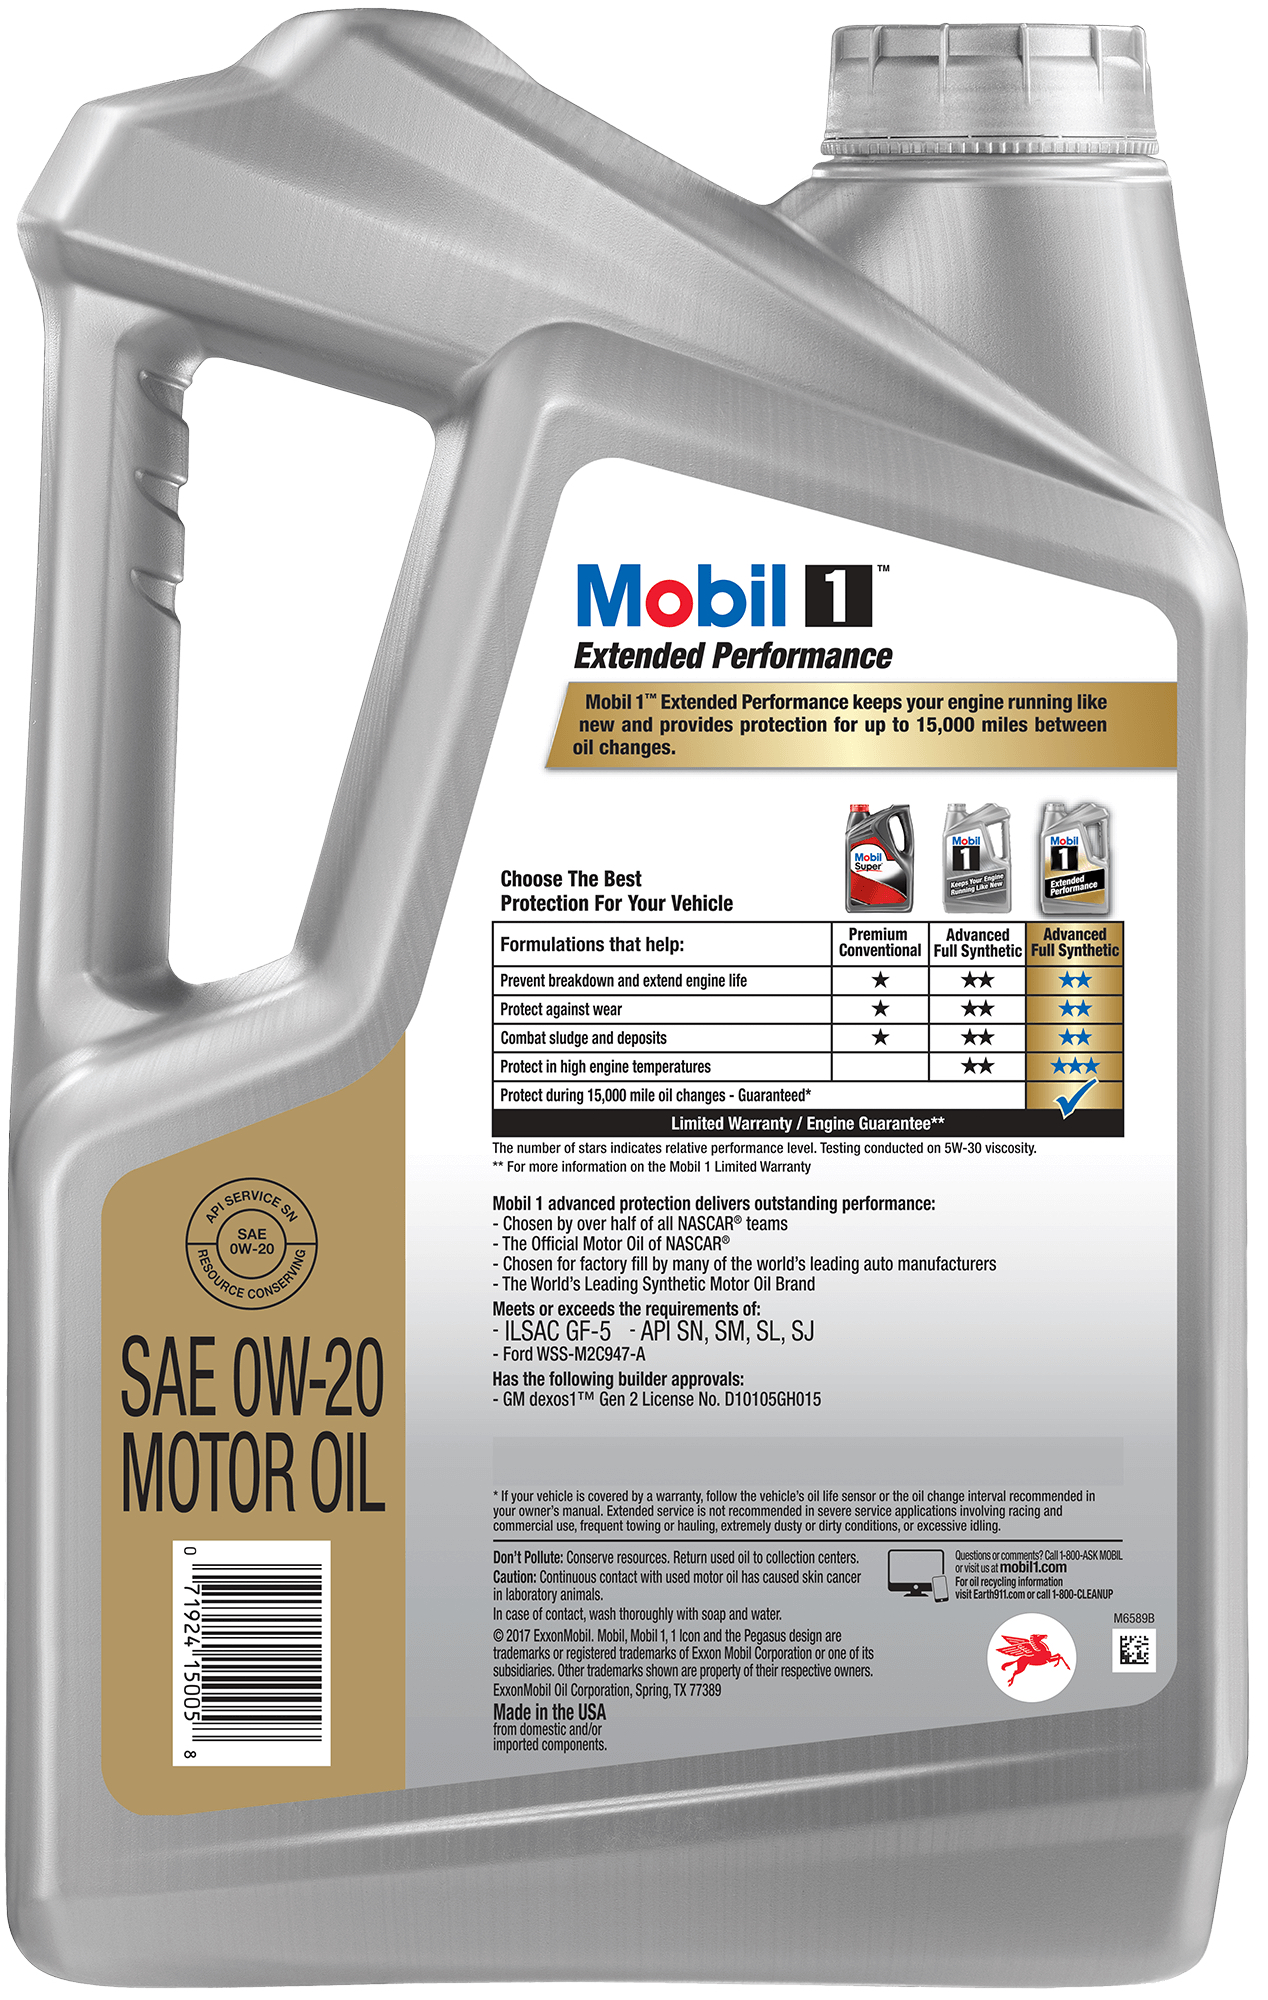 0W-20 MOBIL 1 EXTENDED PERFORMANCE MOTOR OIL - 5LITERS